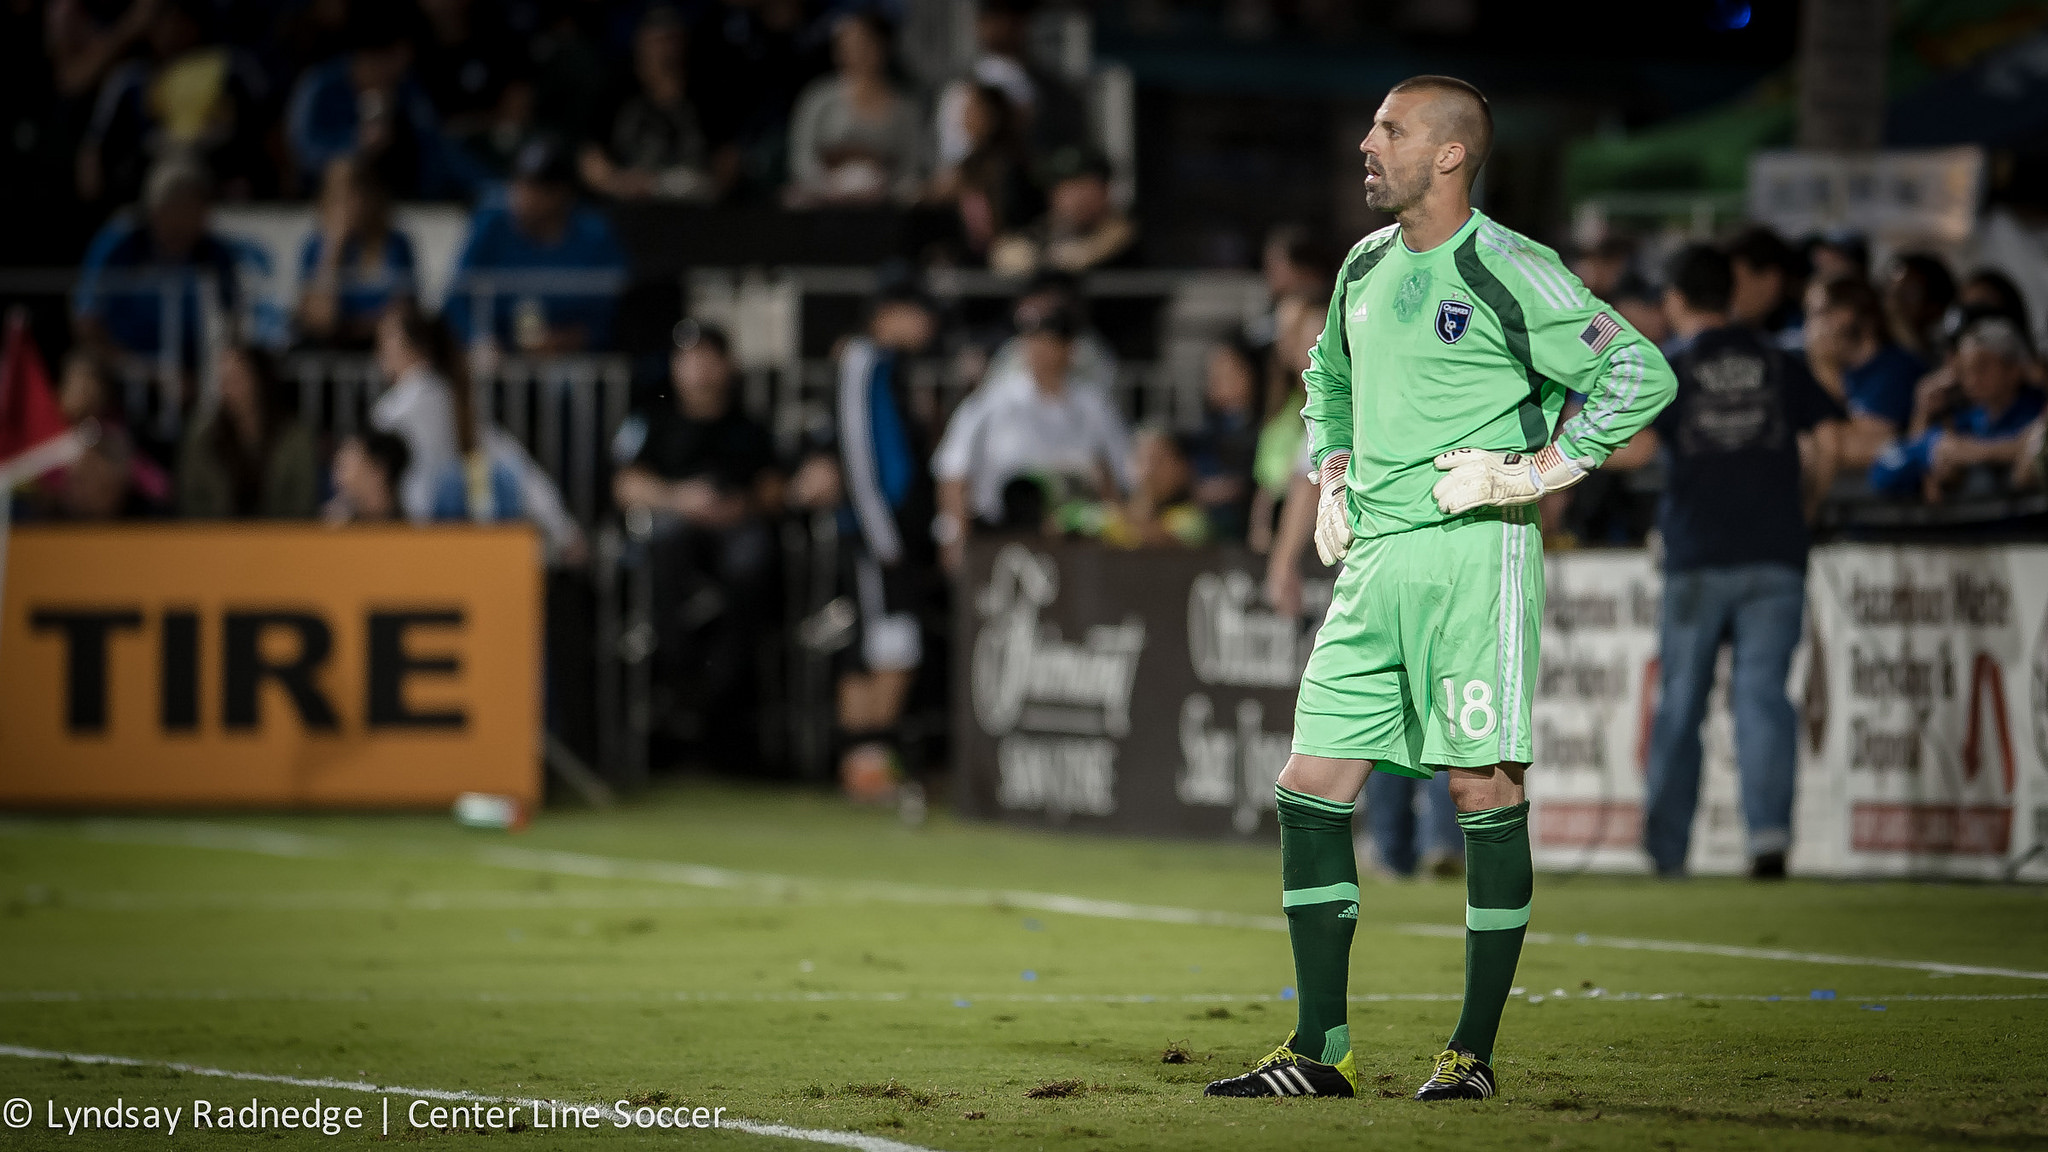 Might goalkeeper Jon Busch be selected in the 2014 MLS Expansion Draft?